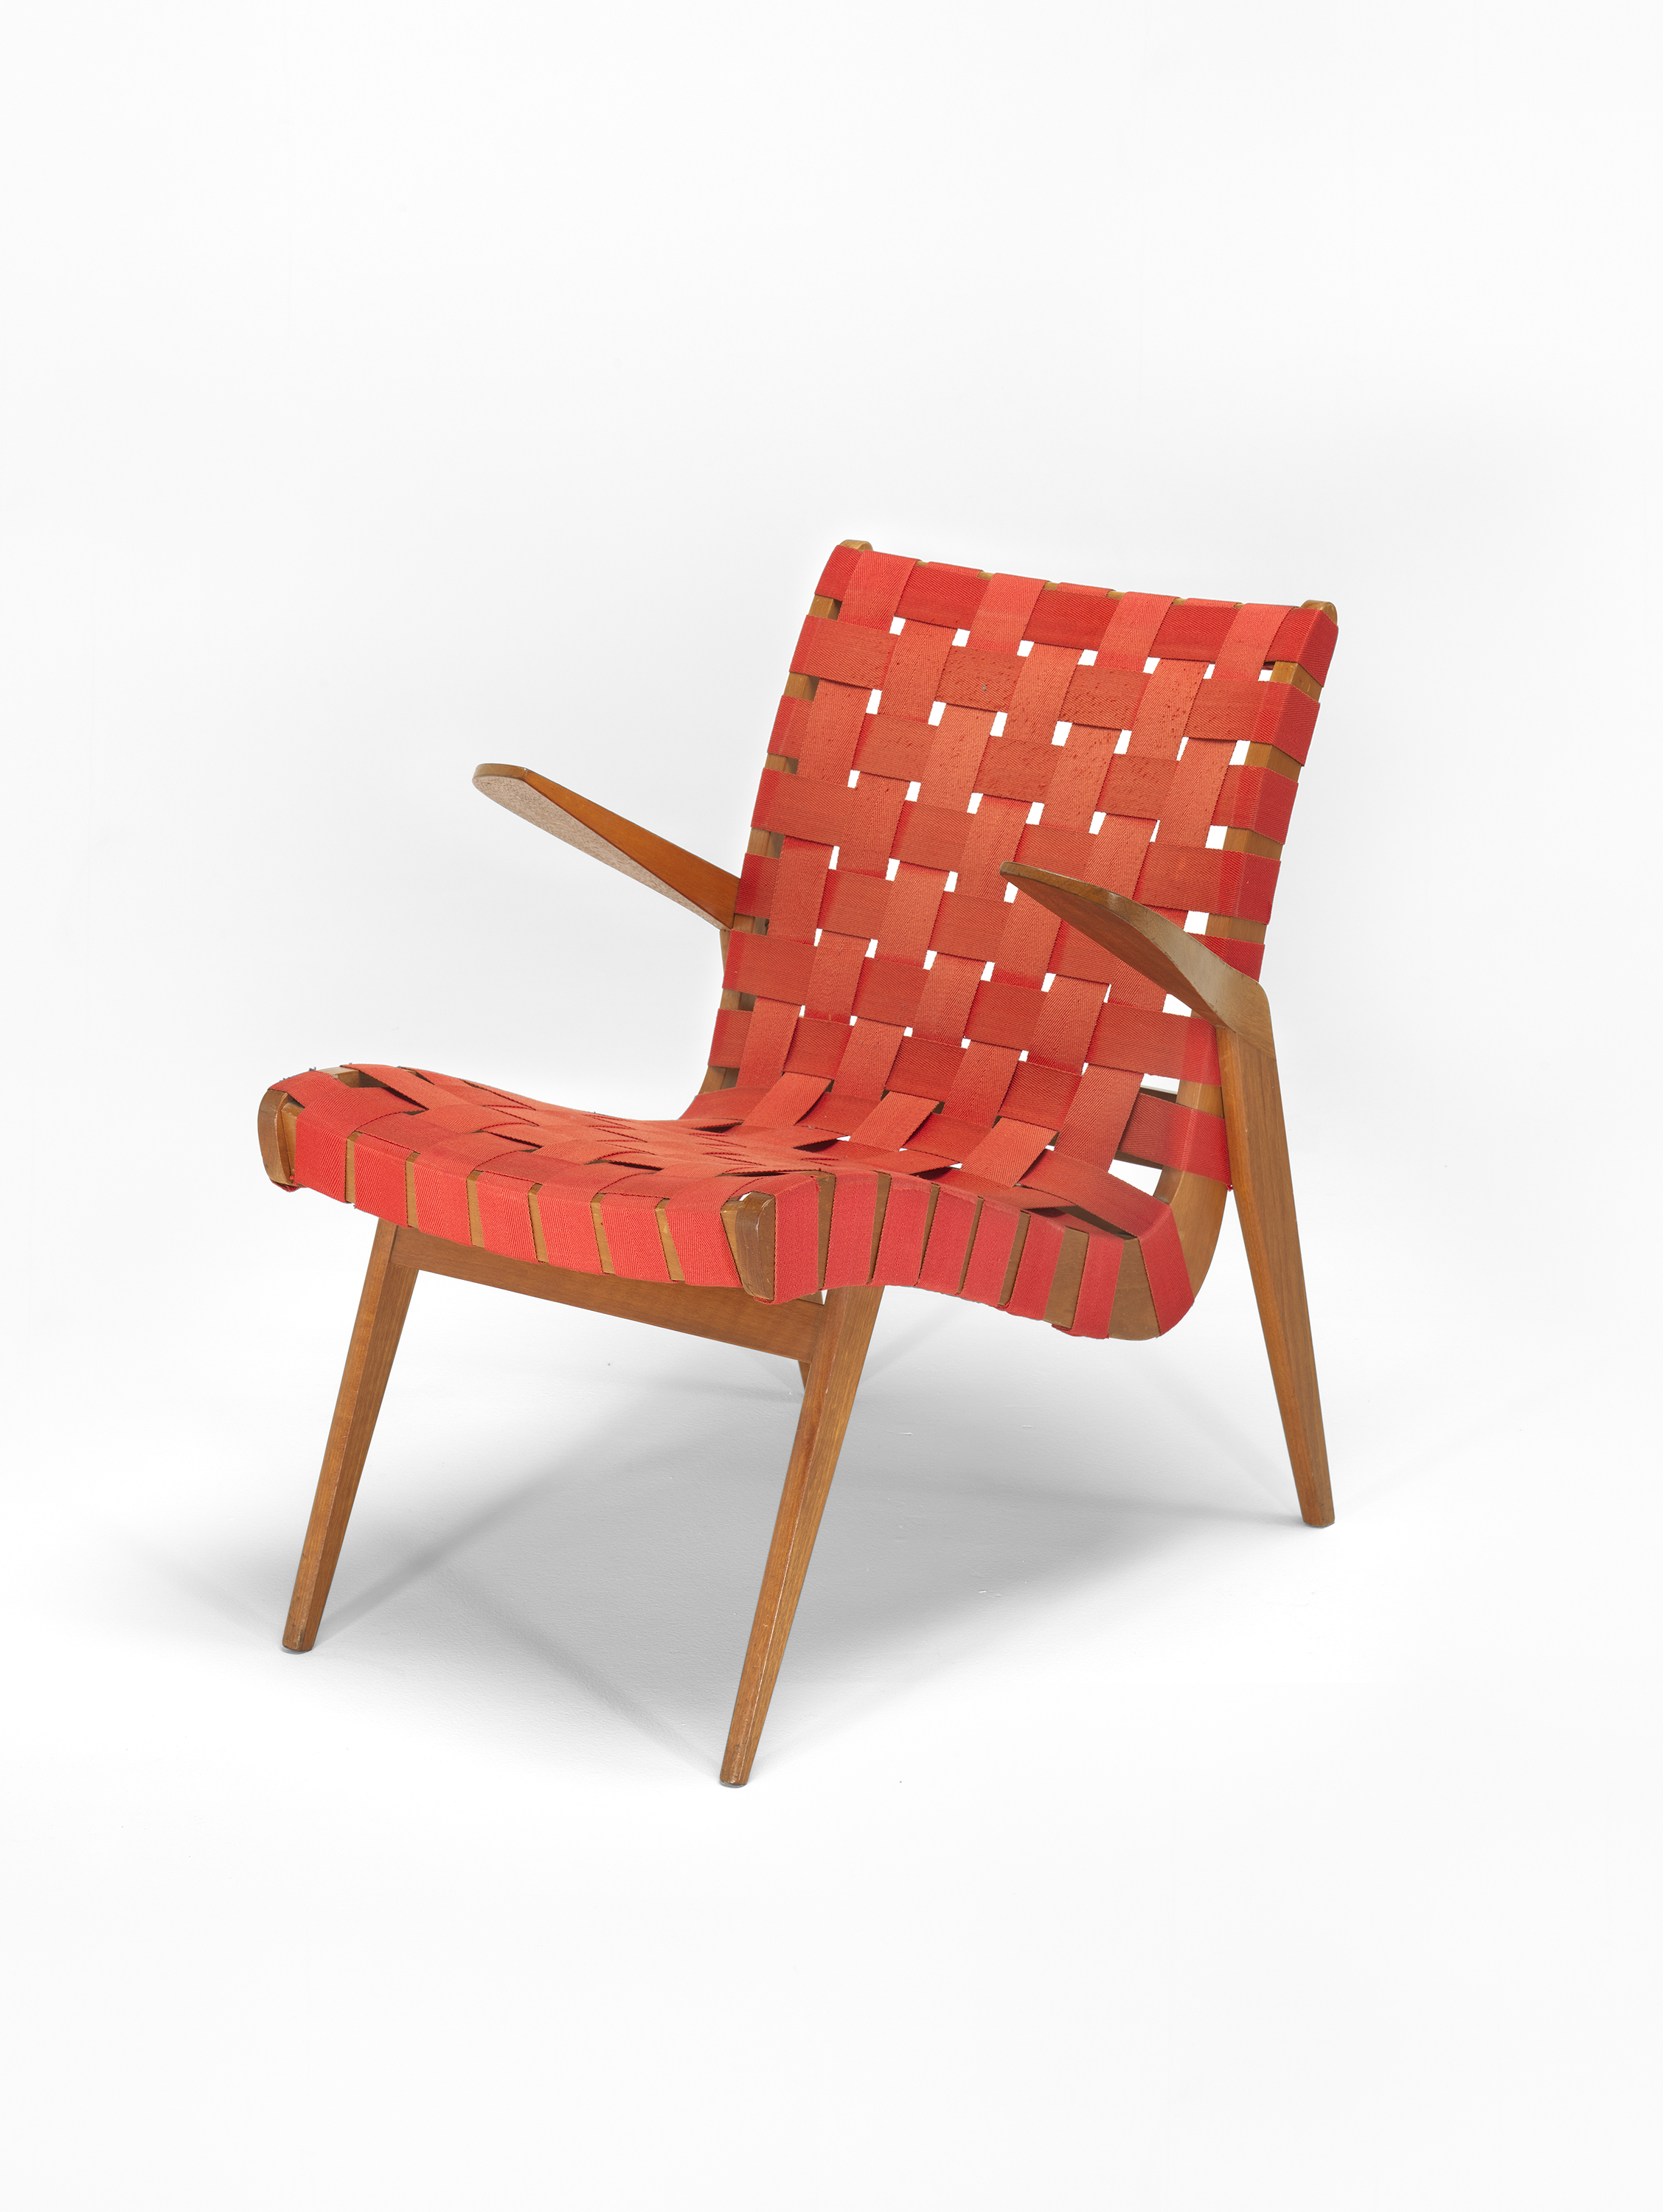 Snelling furniture highlighted at ngv mid century show snelling line armchair with hardwood frames and interlaced cotton webbing designed 1946 by malvernweather Choice Image